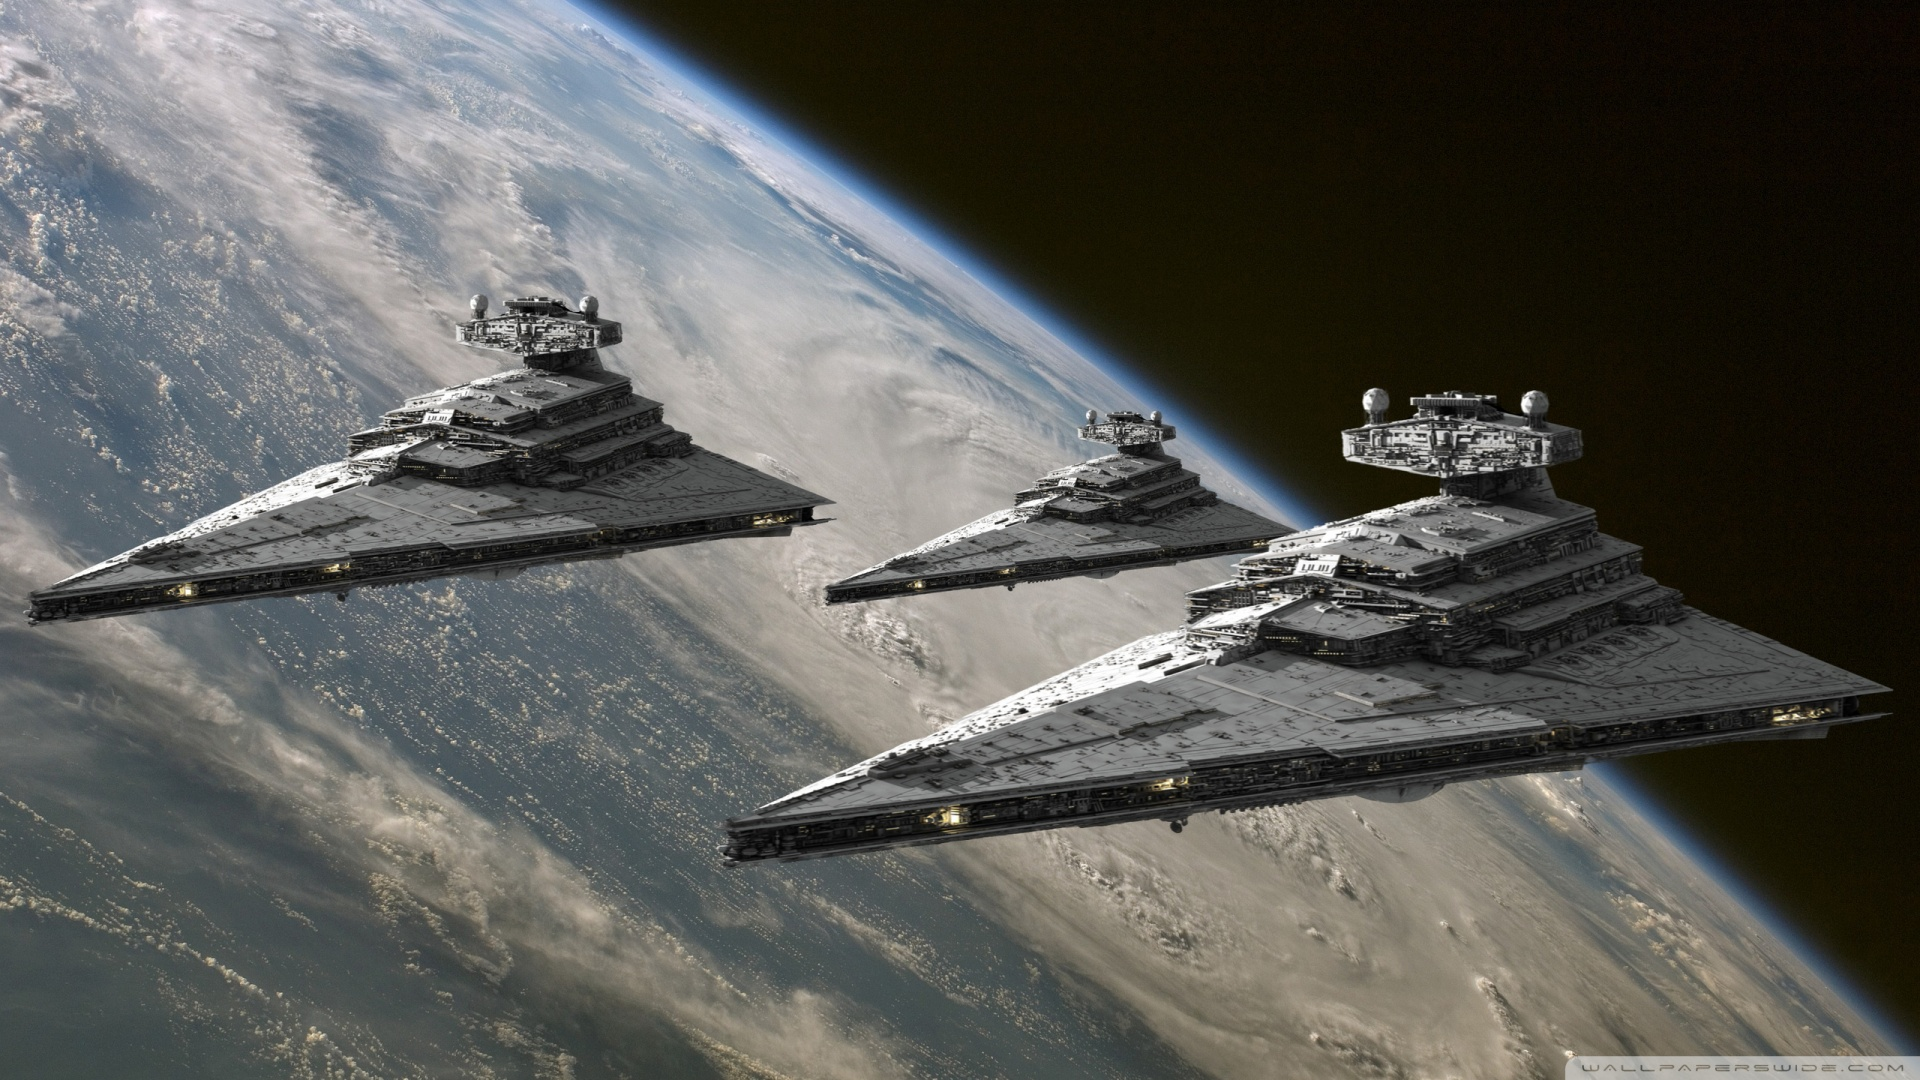 Star Wars Ships Ultra Hd Desktop Background Wallpaper For 4k